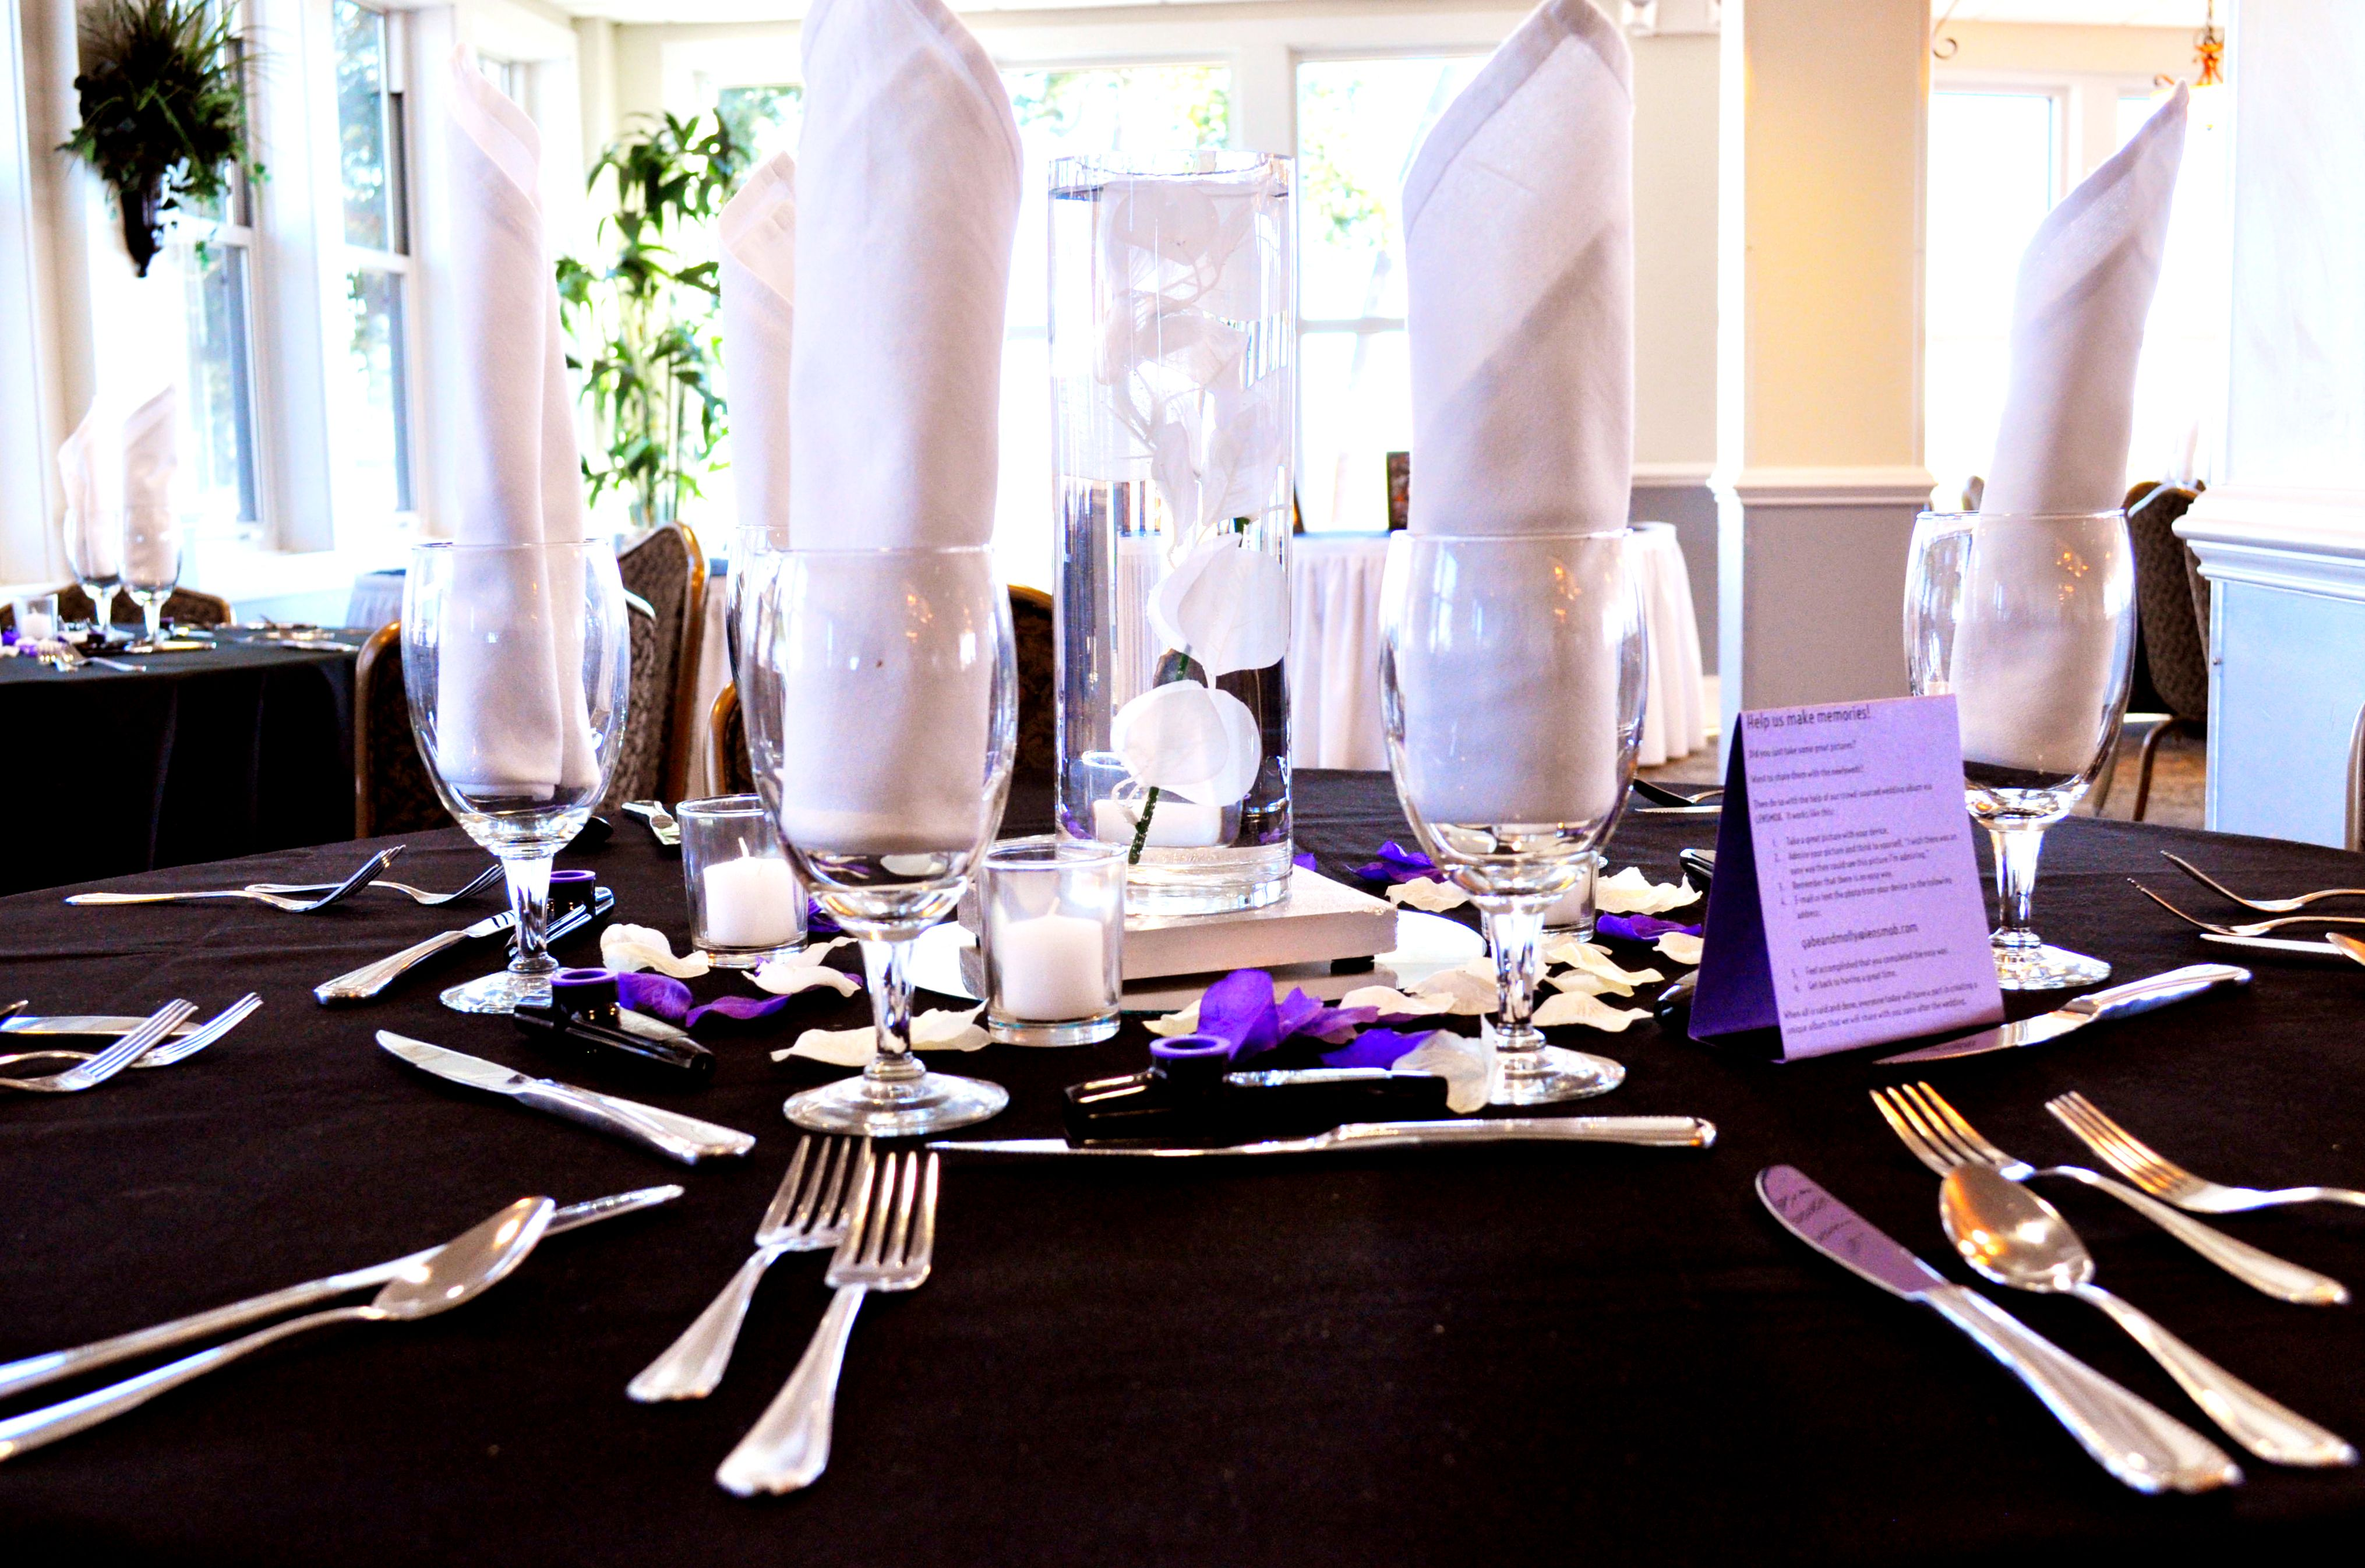 Beaufort Weddings - A black, white and purple table setting